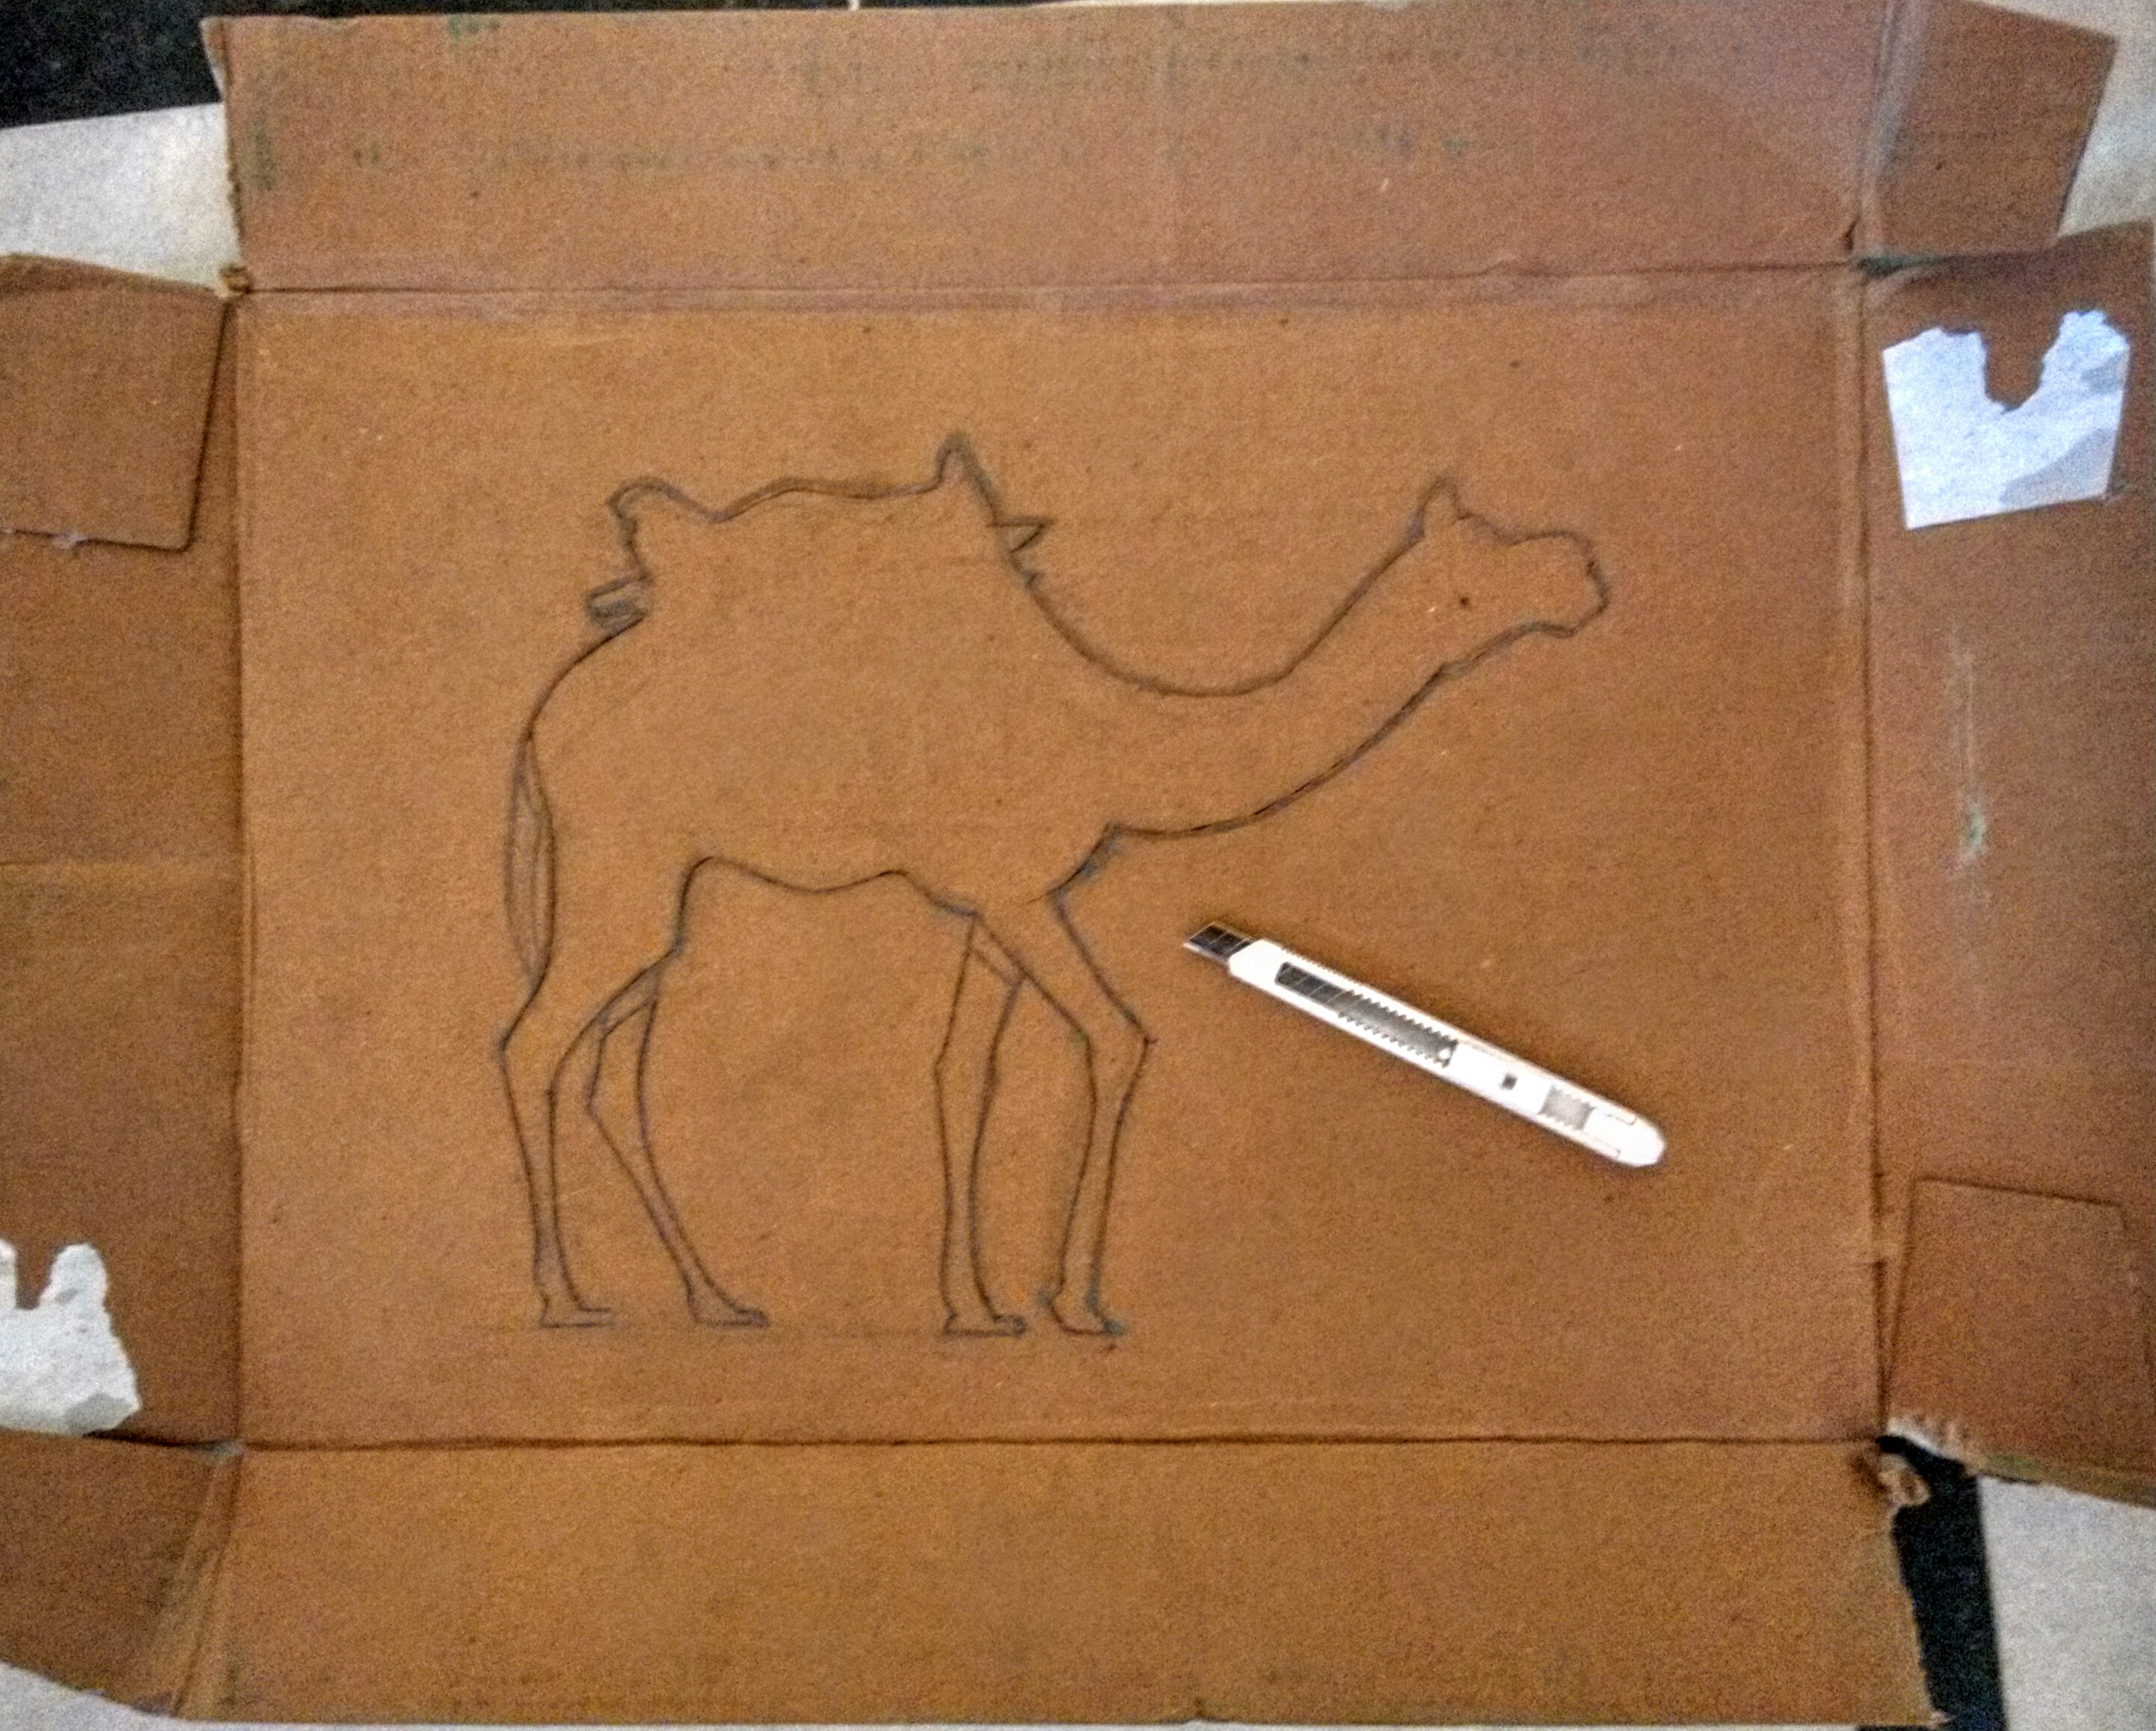 camel, stencil, cutting, drawing, craft knife